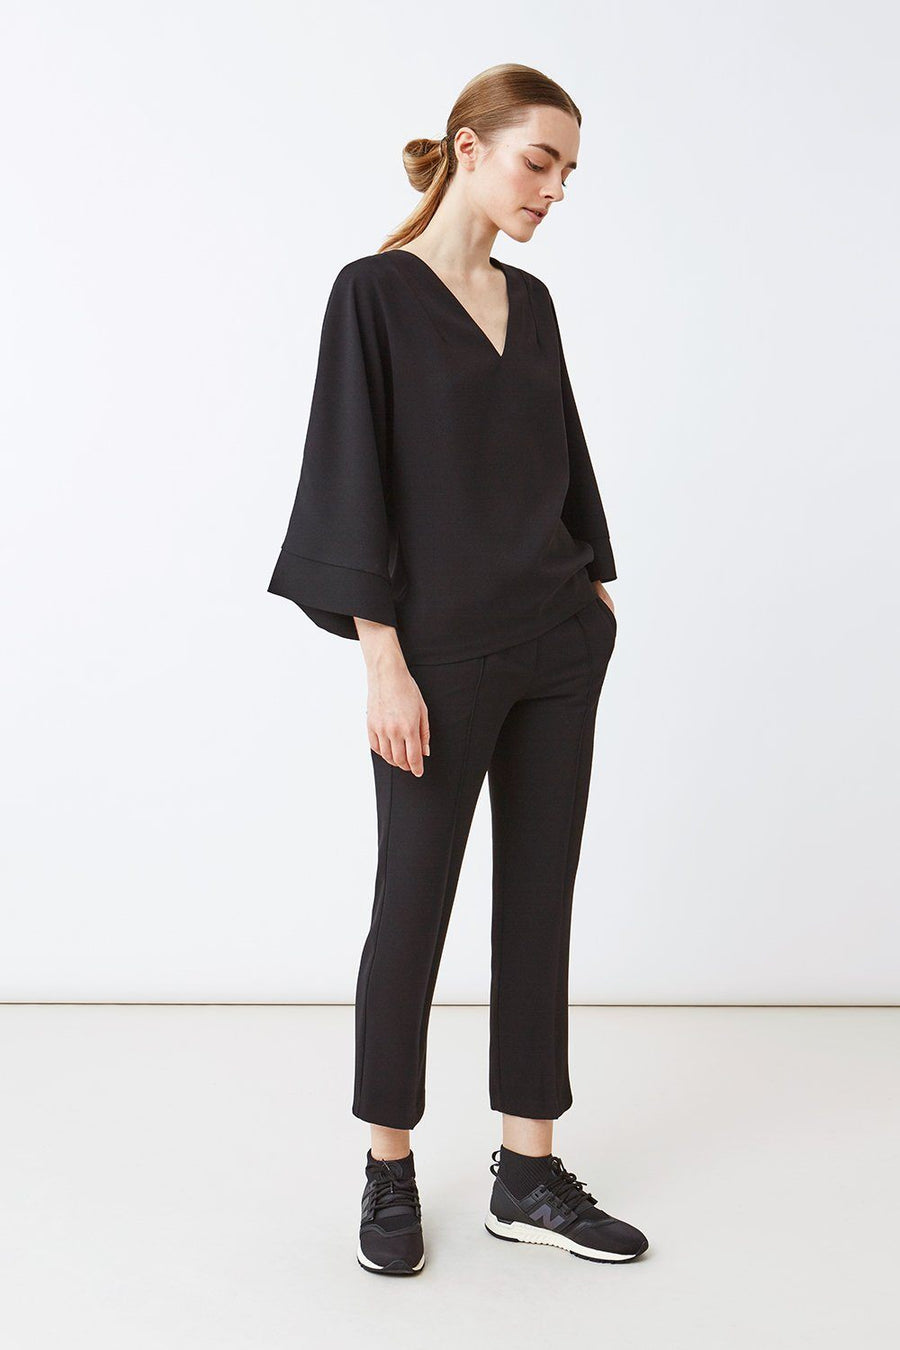 ELITA SWEATER - BLACK